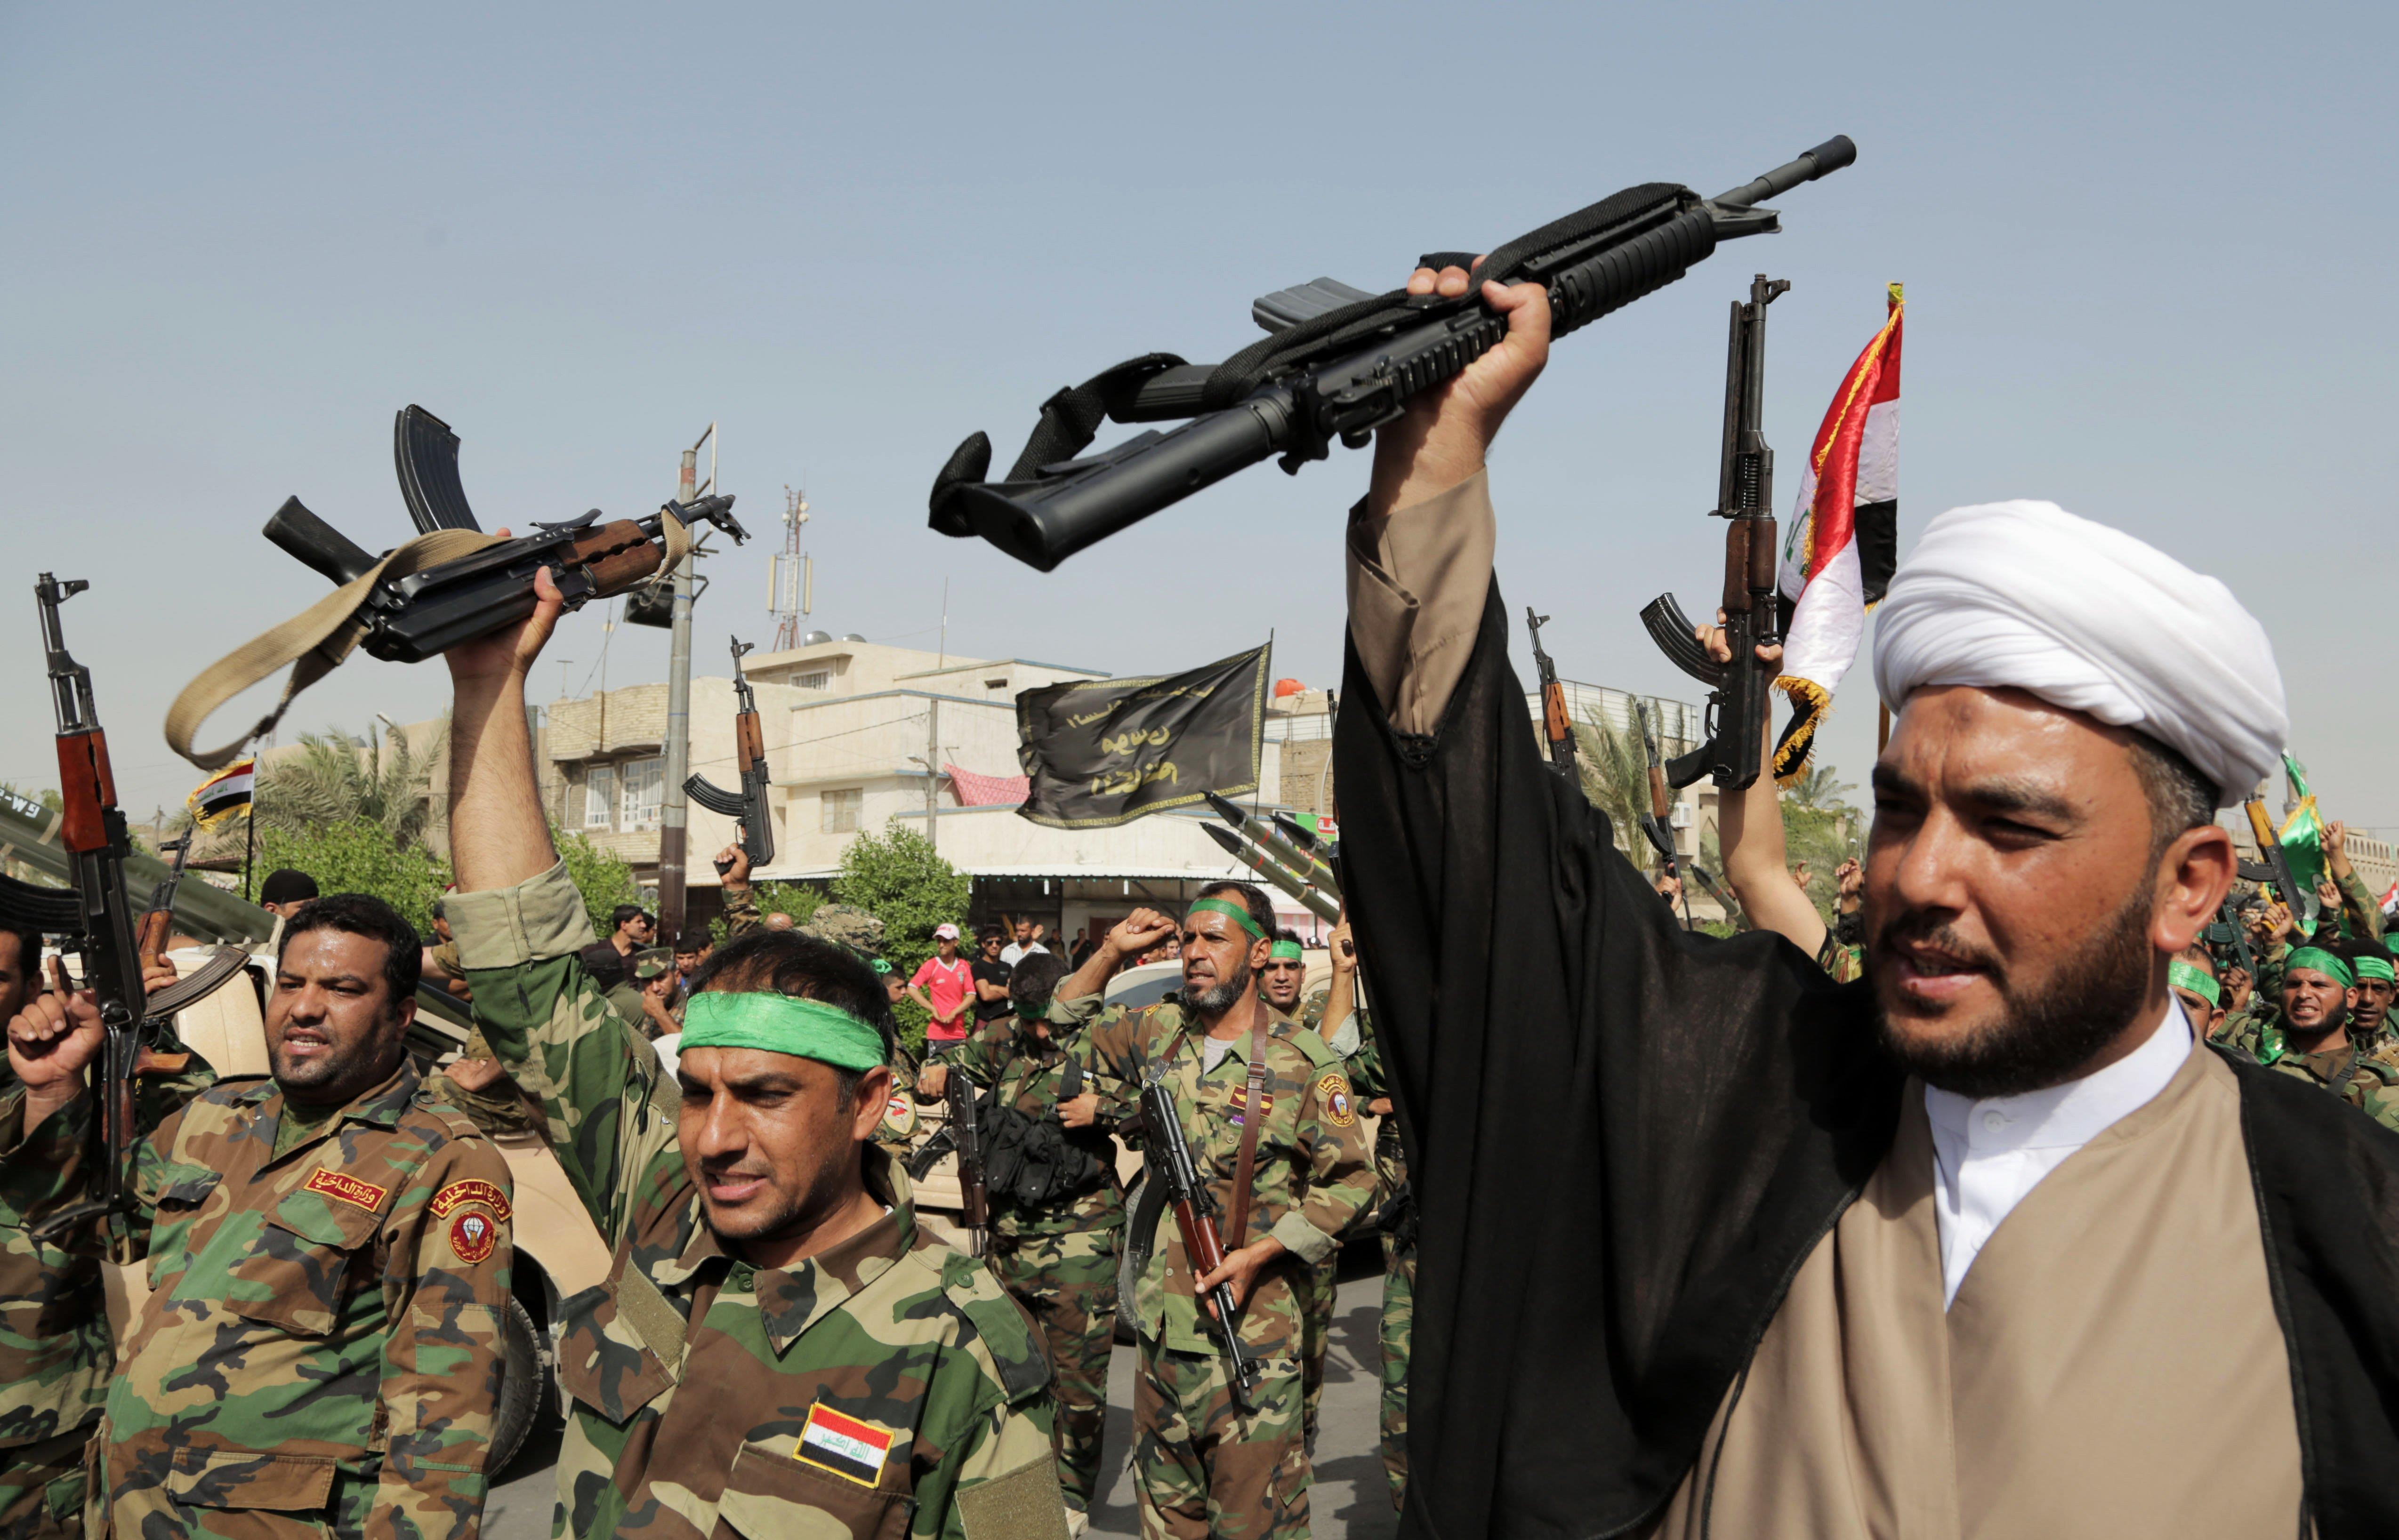 Image: Weapons are raised in Baghdad Saturday during a military parade and demonstration against Islamic militants